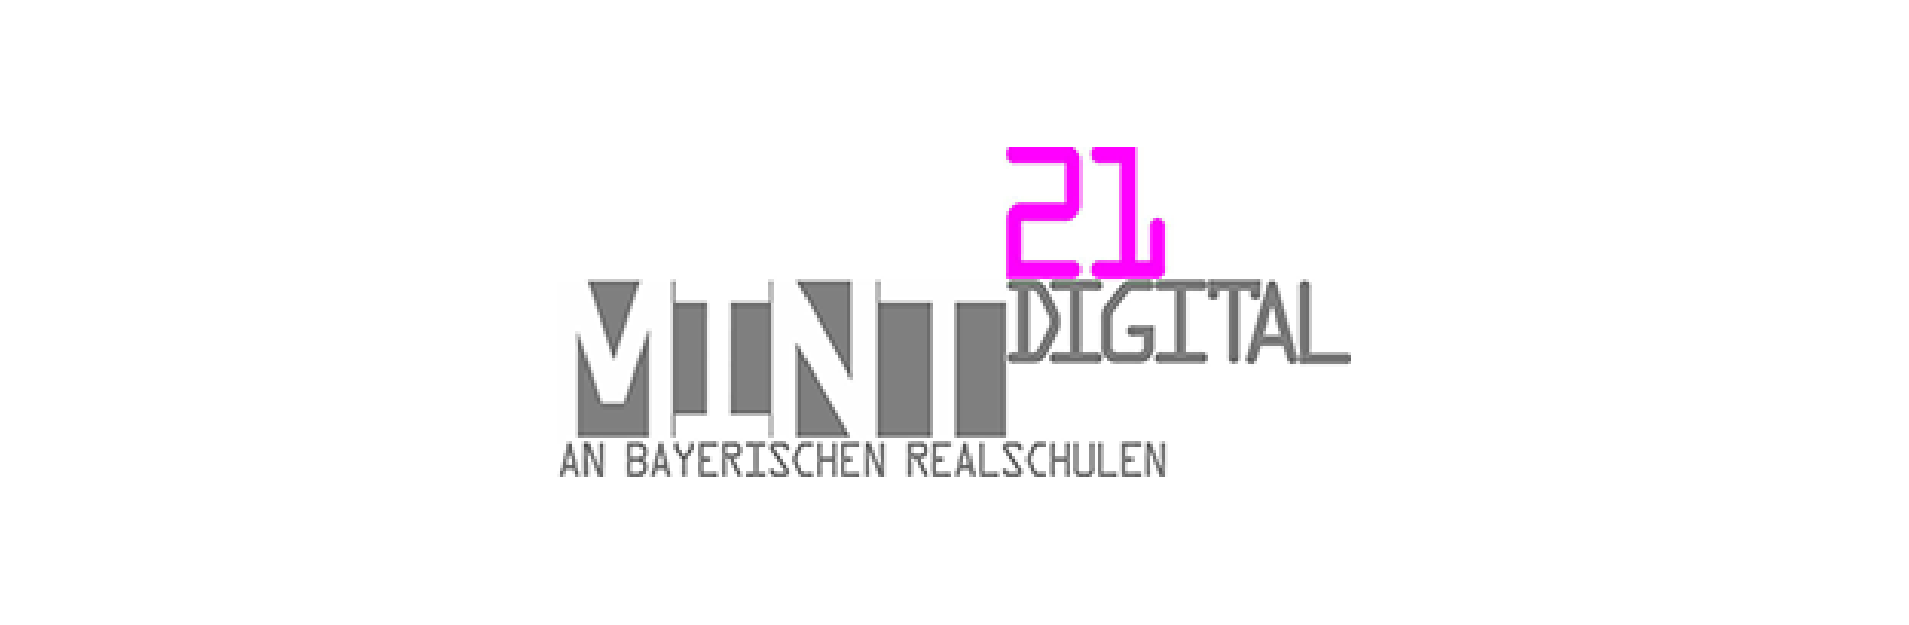 Das Logo der Initiative MINT21 digital